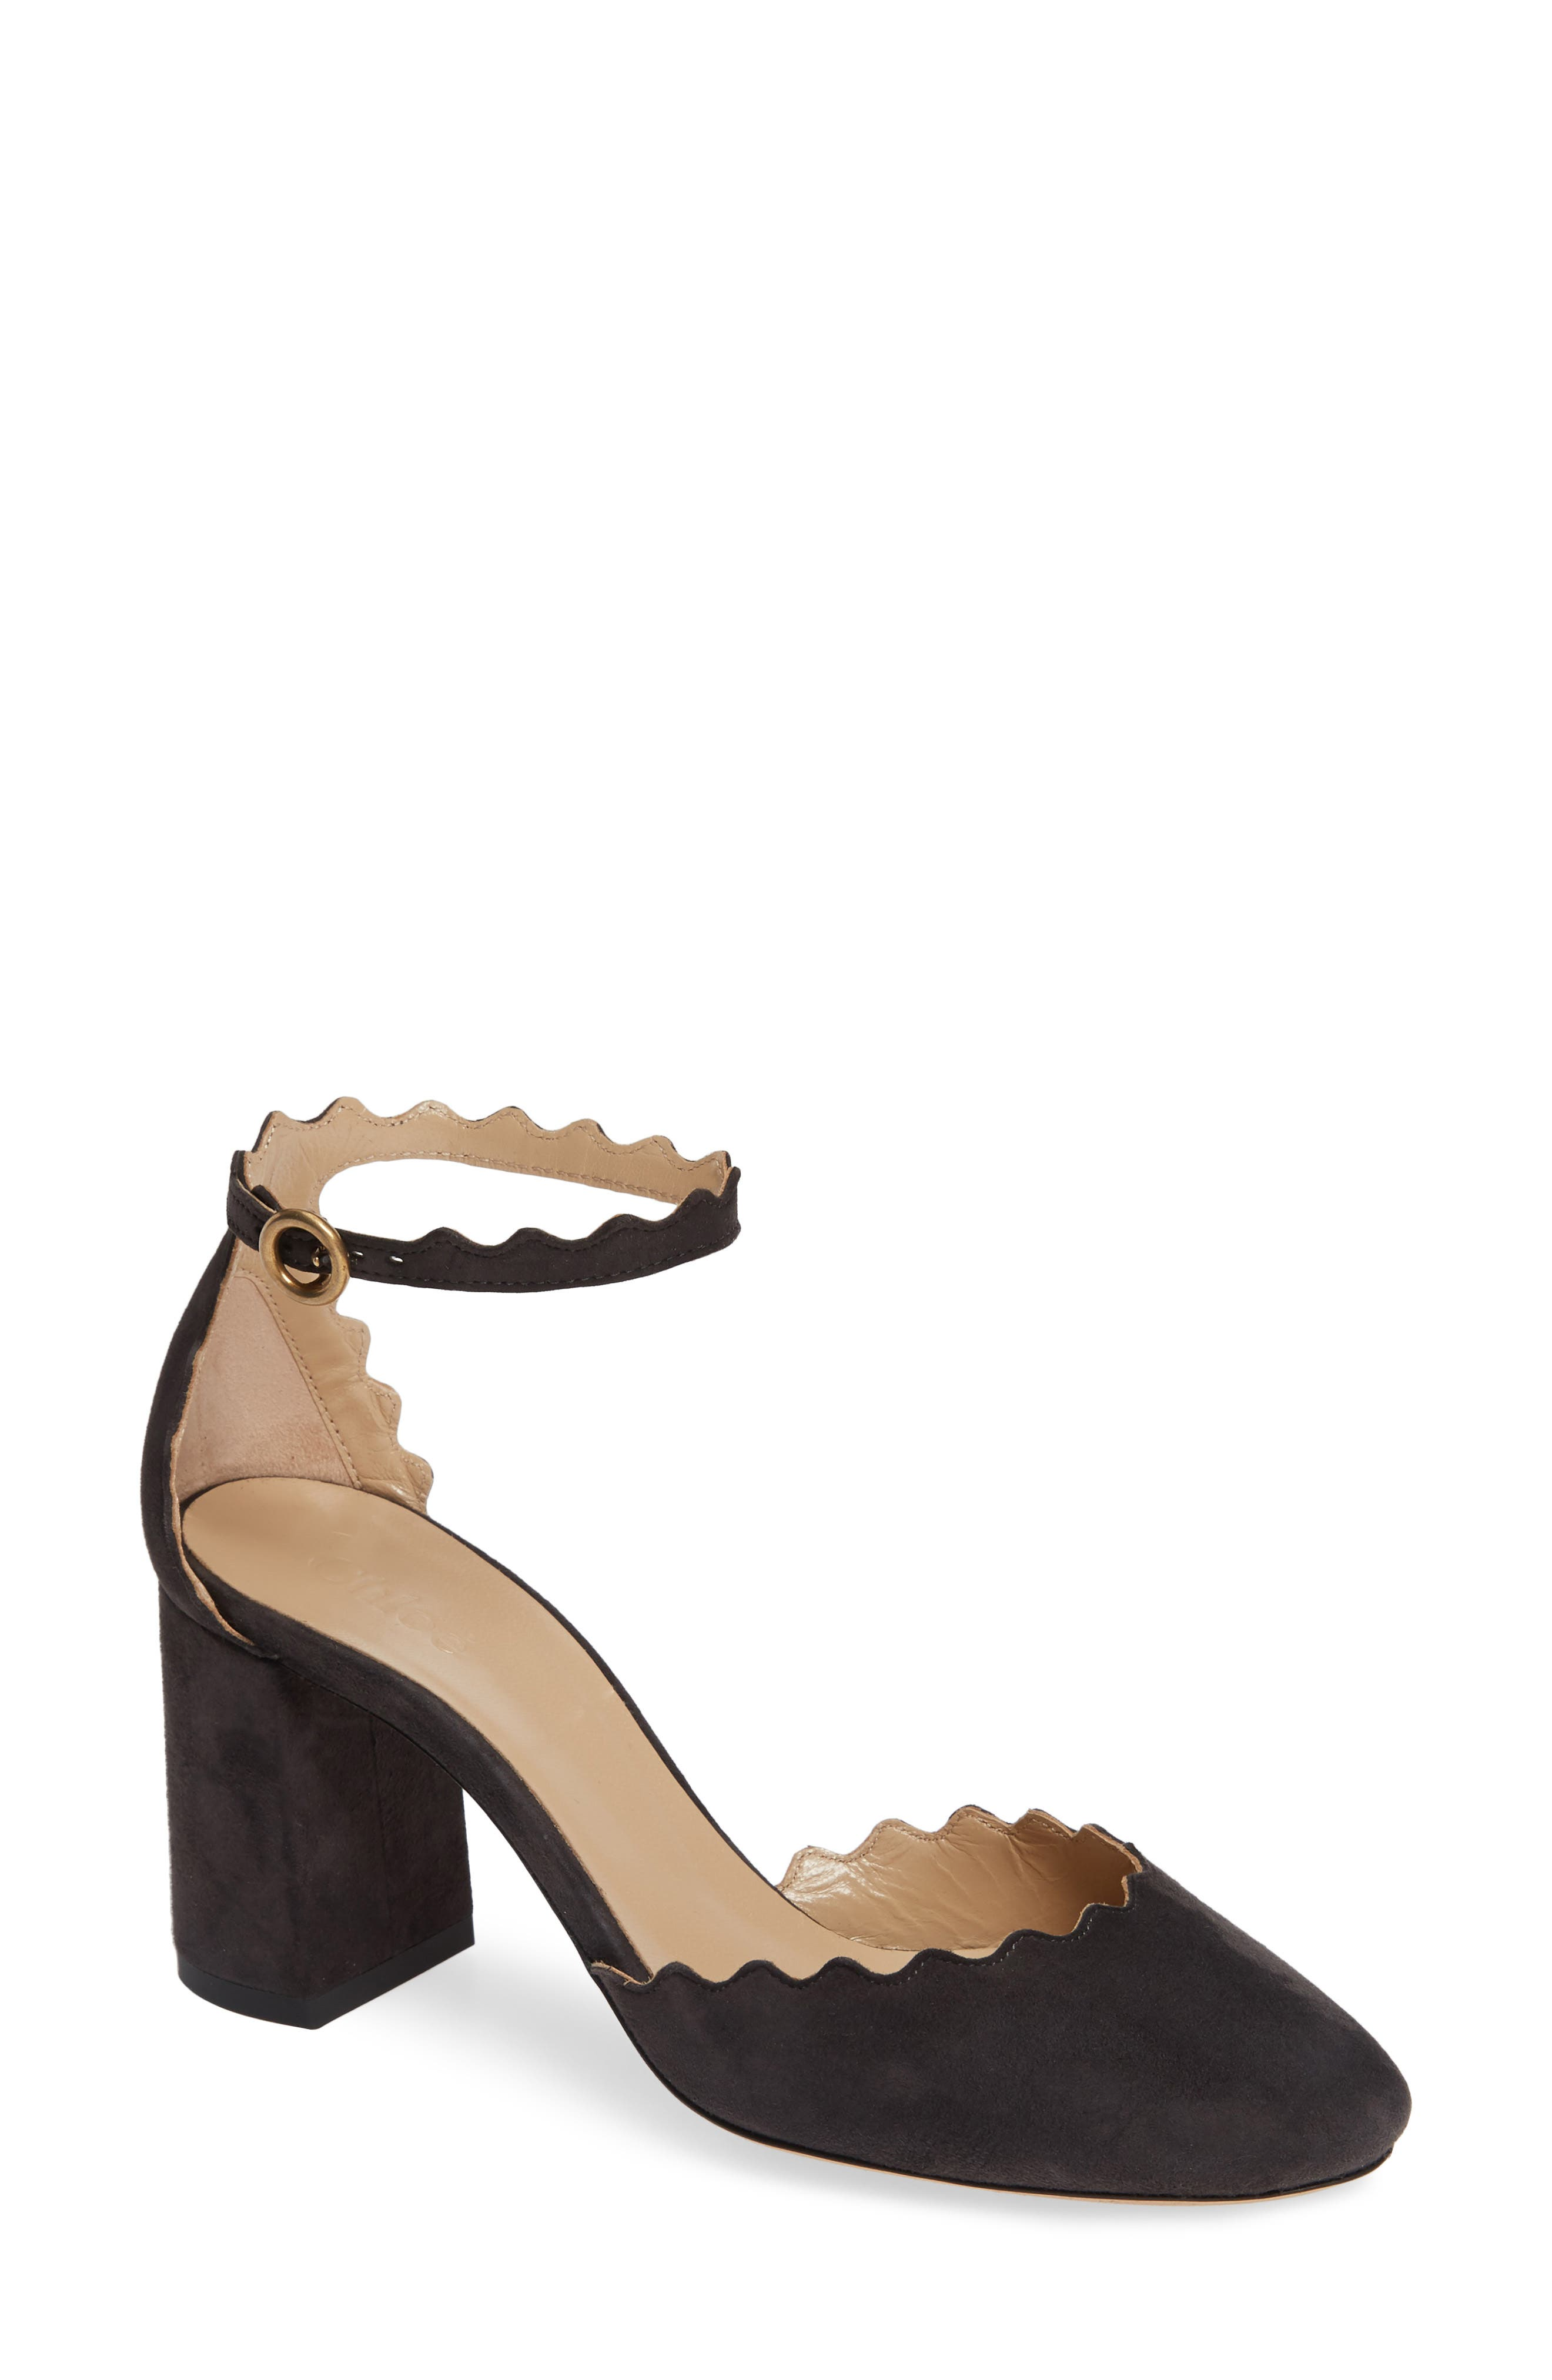 Scalloped Ankle Strap d'Orsay Pump,                             Main thumbnail 1, color,                             CHARCOAL BLACK